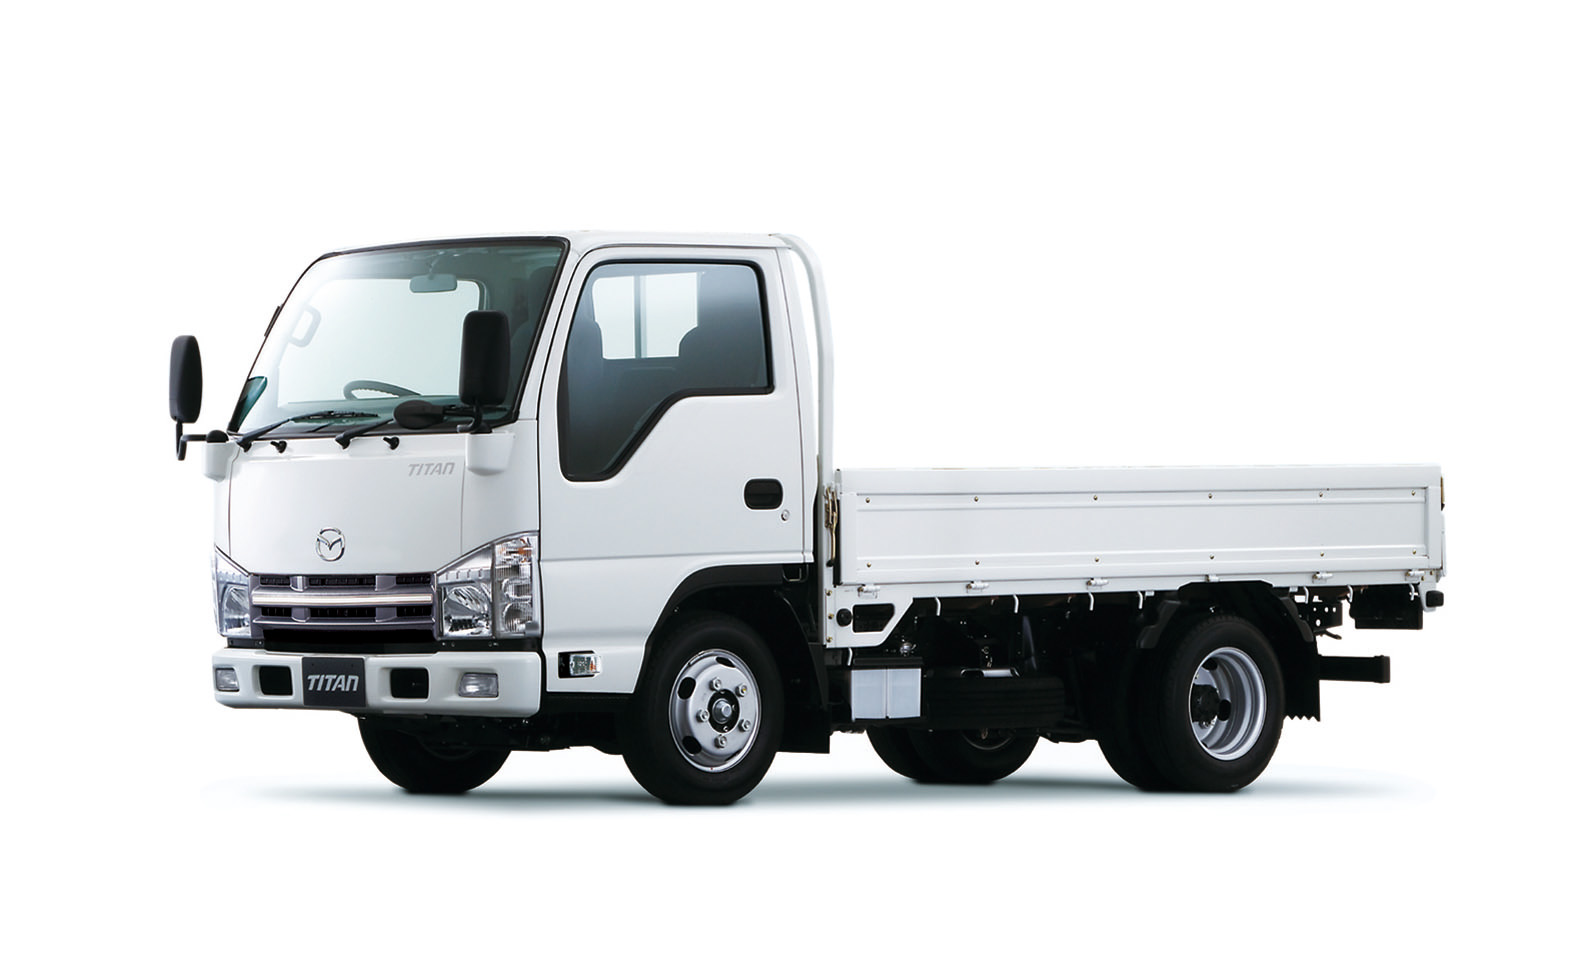 Freightliner Trucks For Sale >> Mazda Titan Truck Facelifted - autoevolution